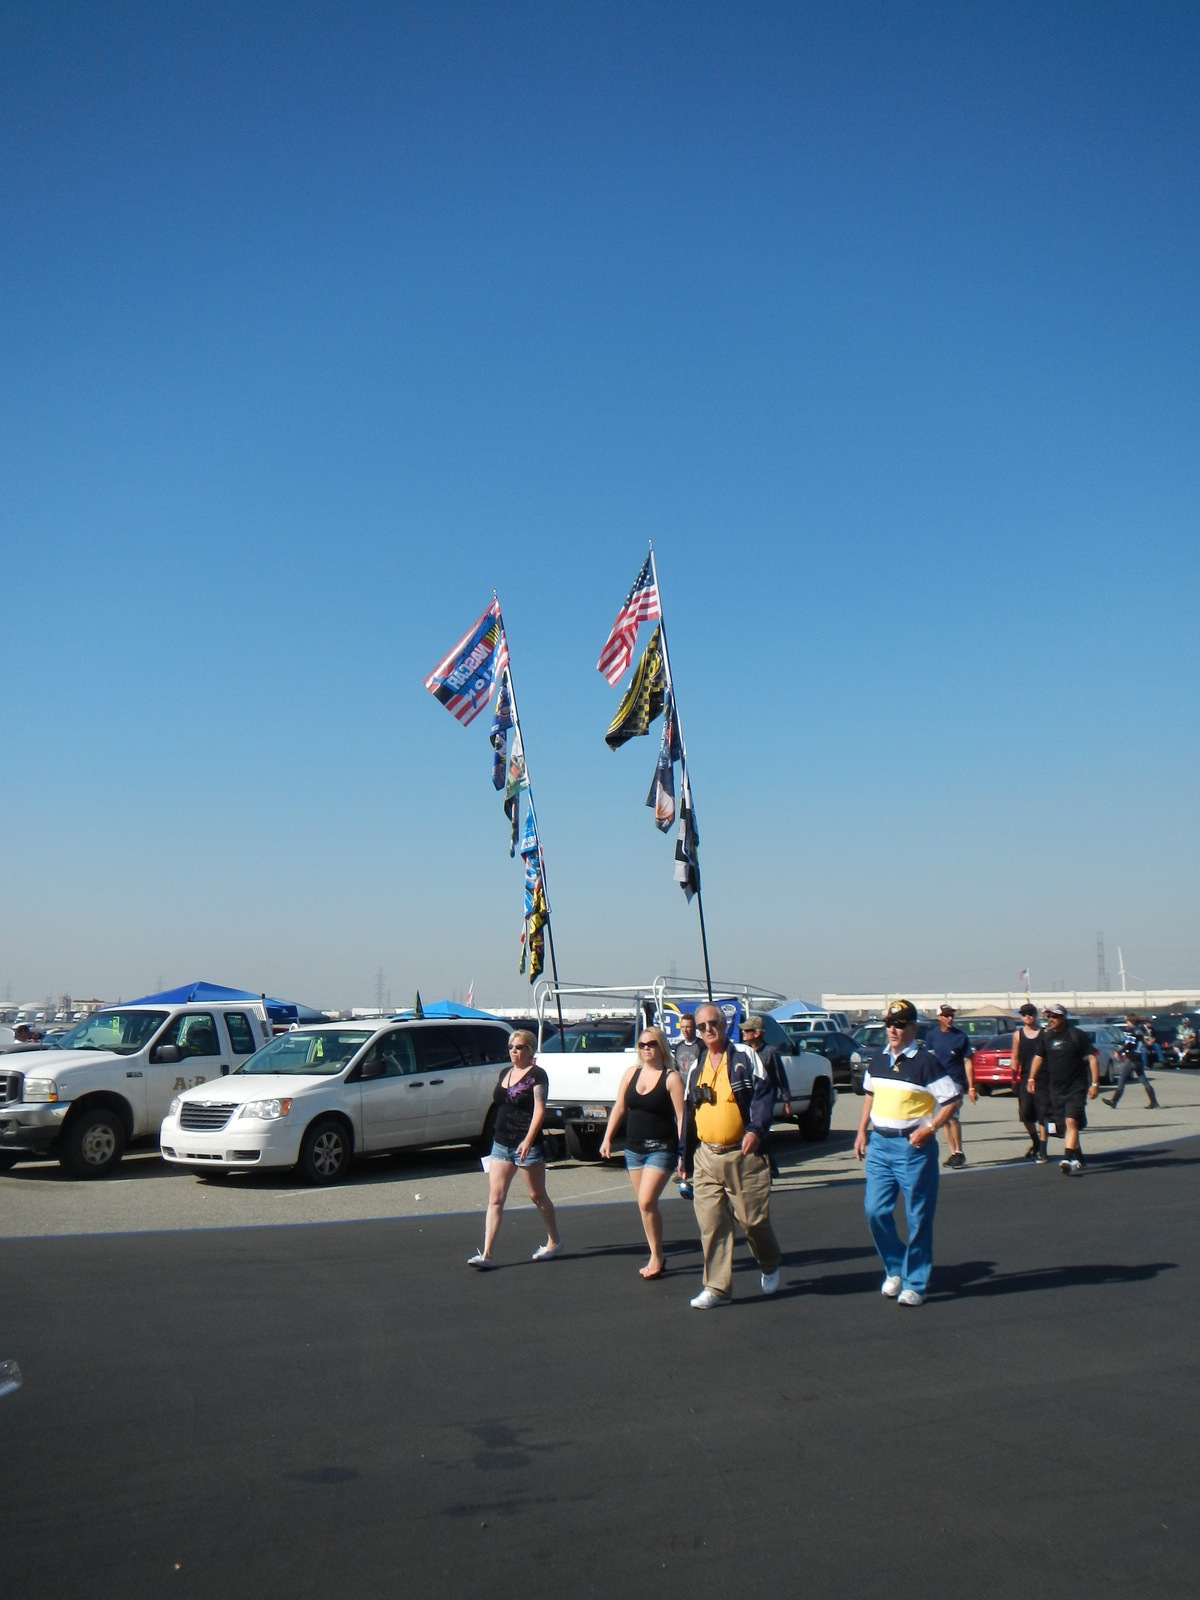 Flags in the parking lot. Lots of flags and tailgate parties!